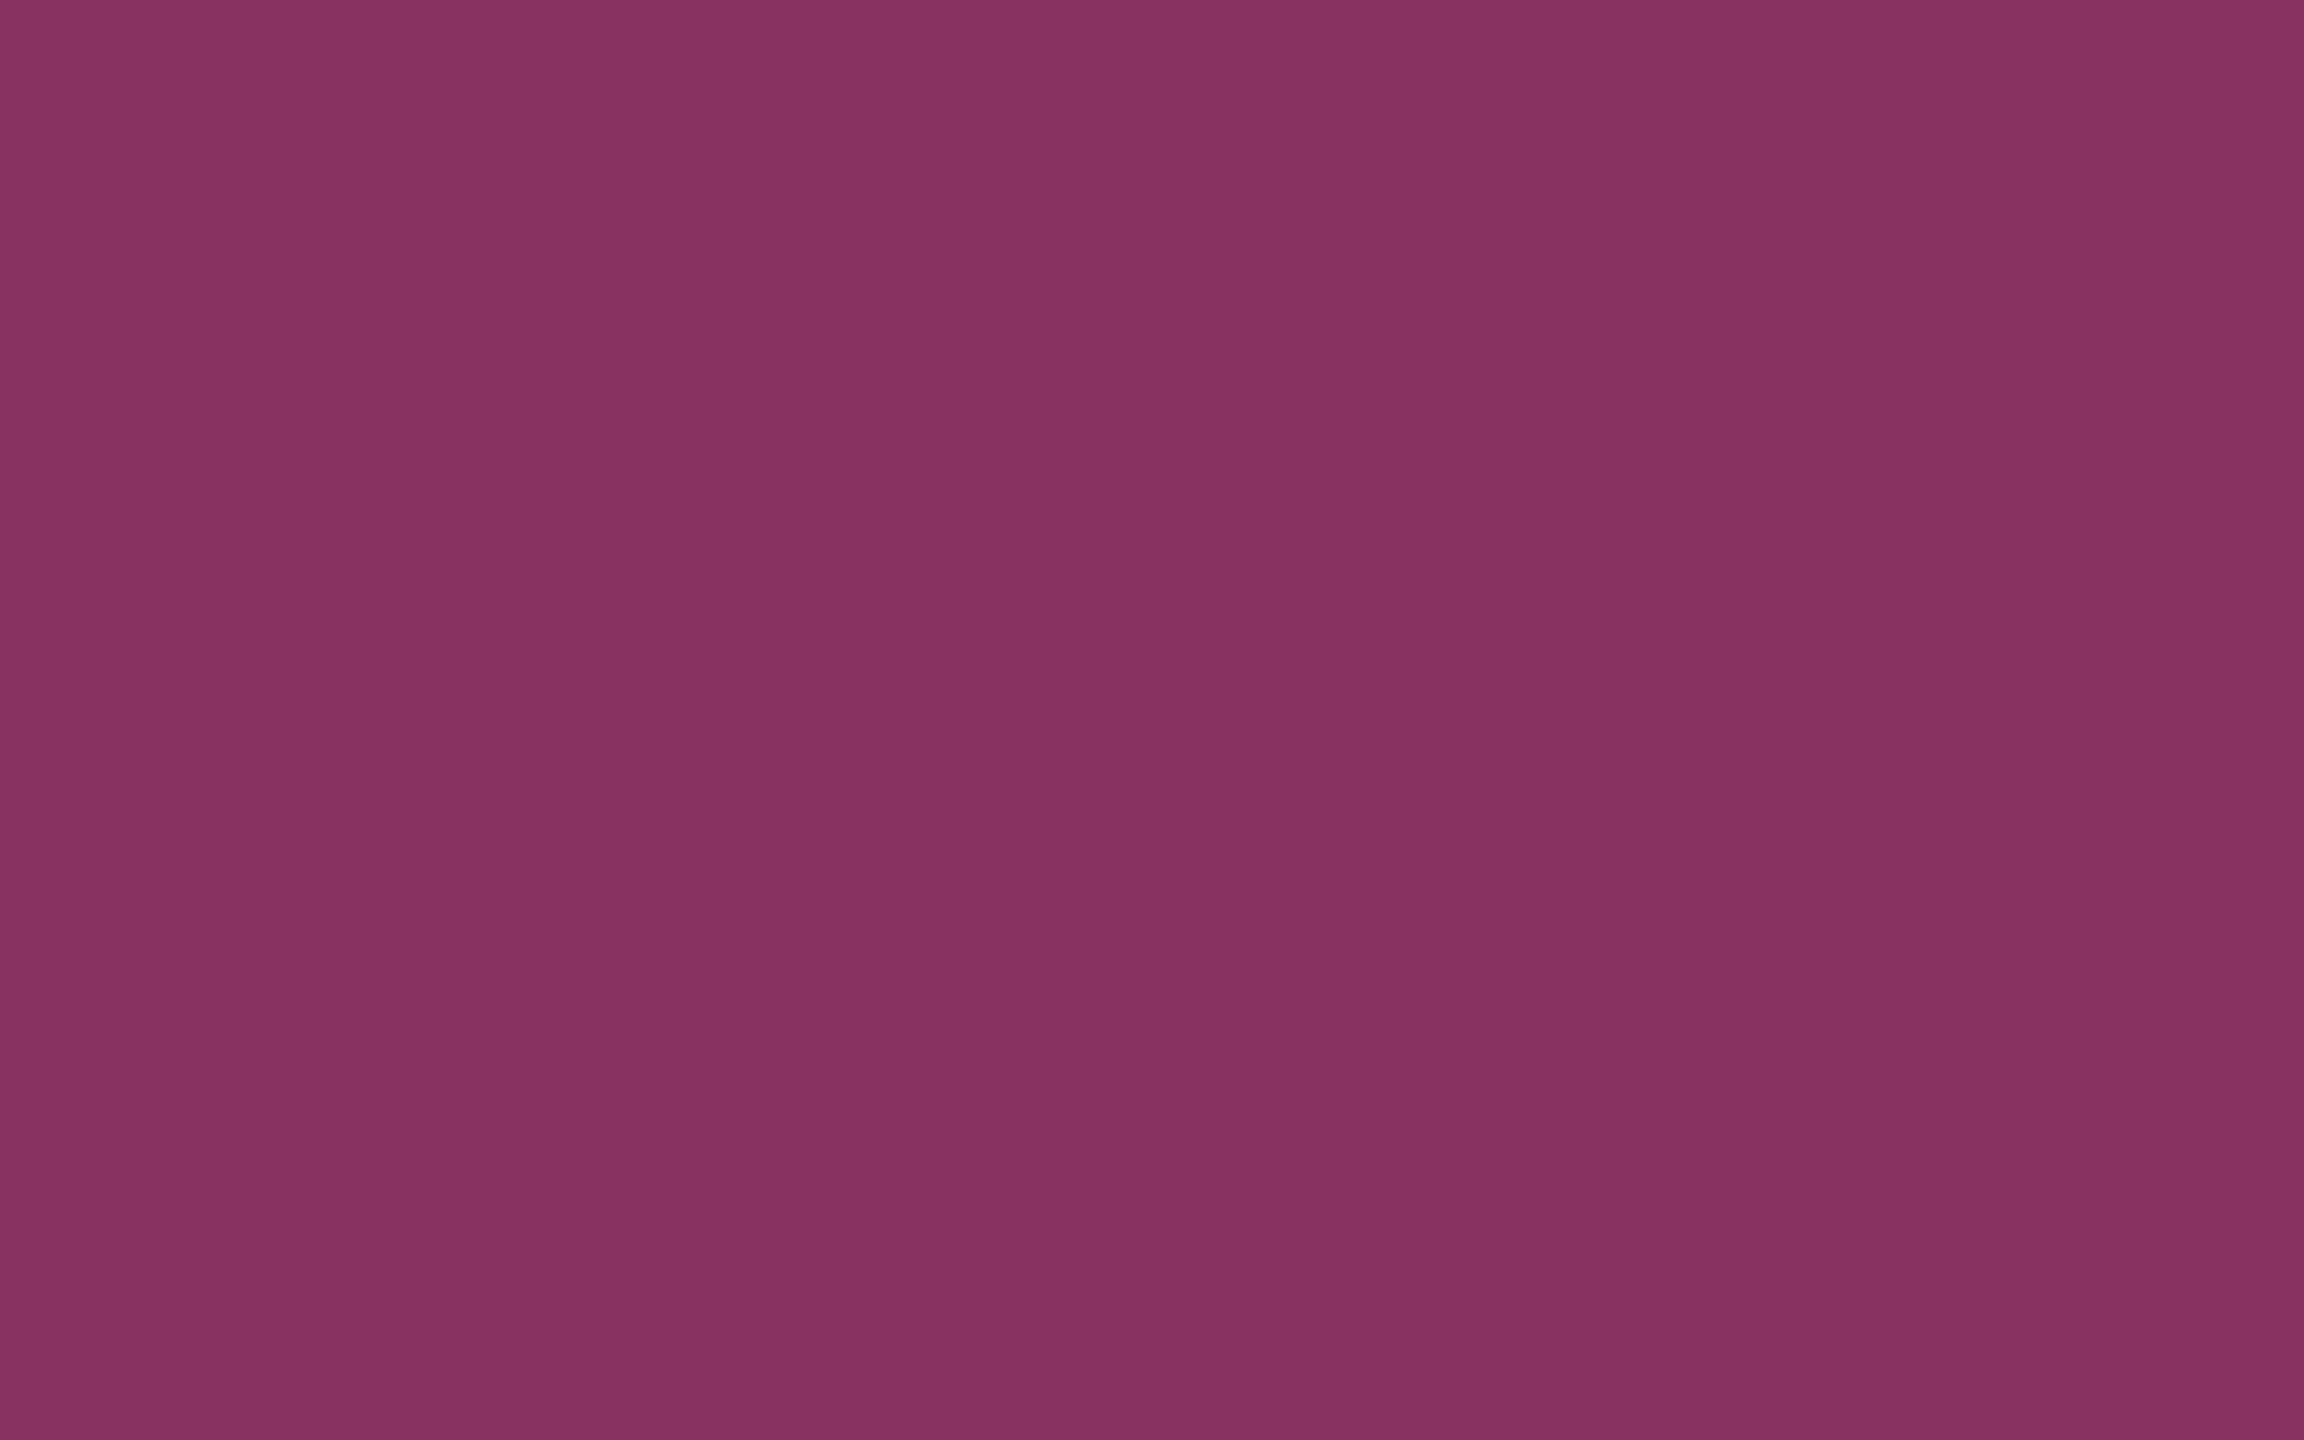 2304x1440 Boysenberry Solid Color Background